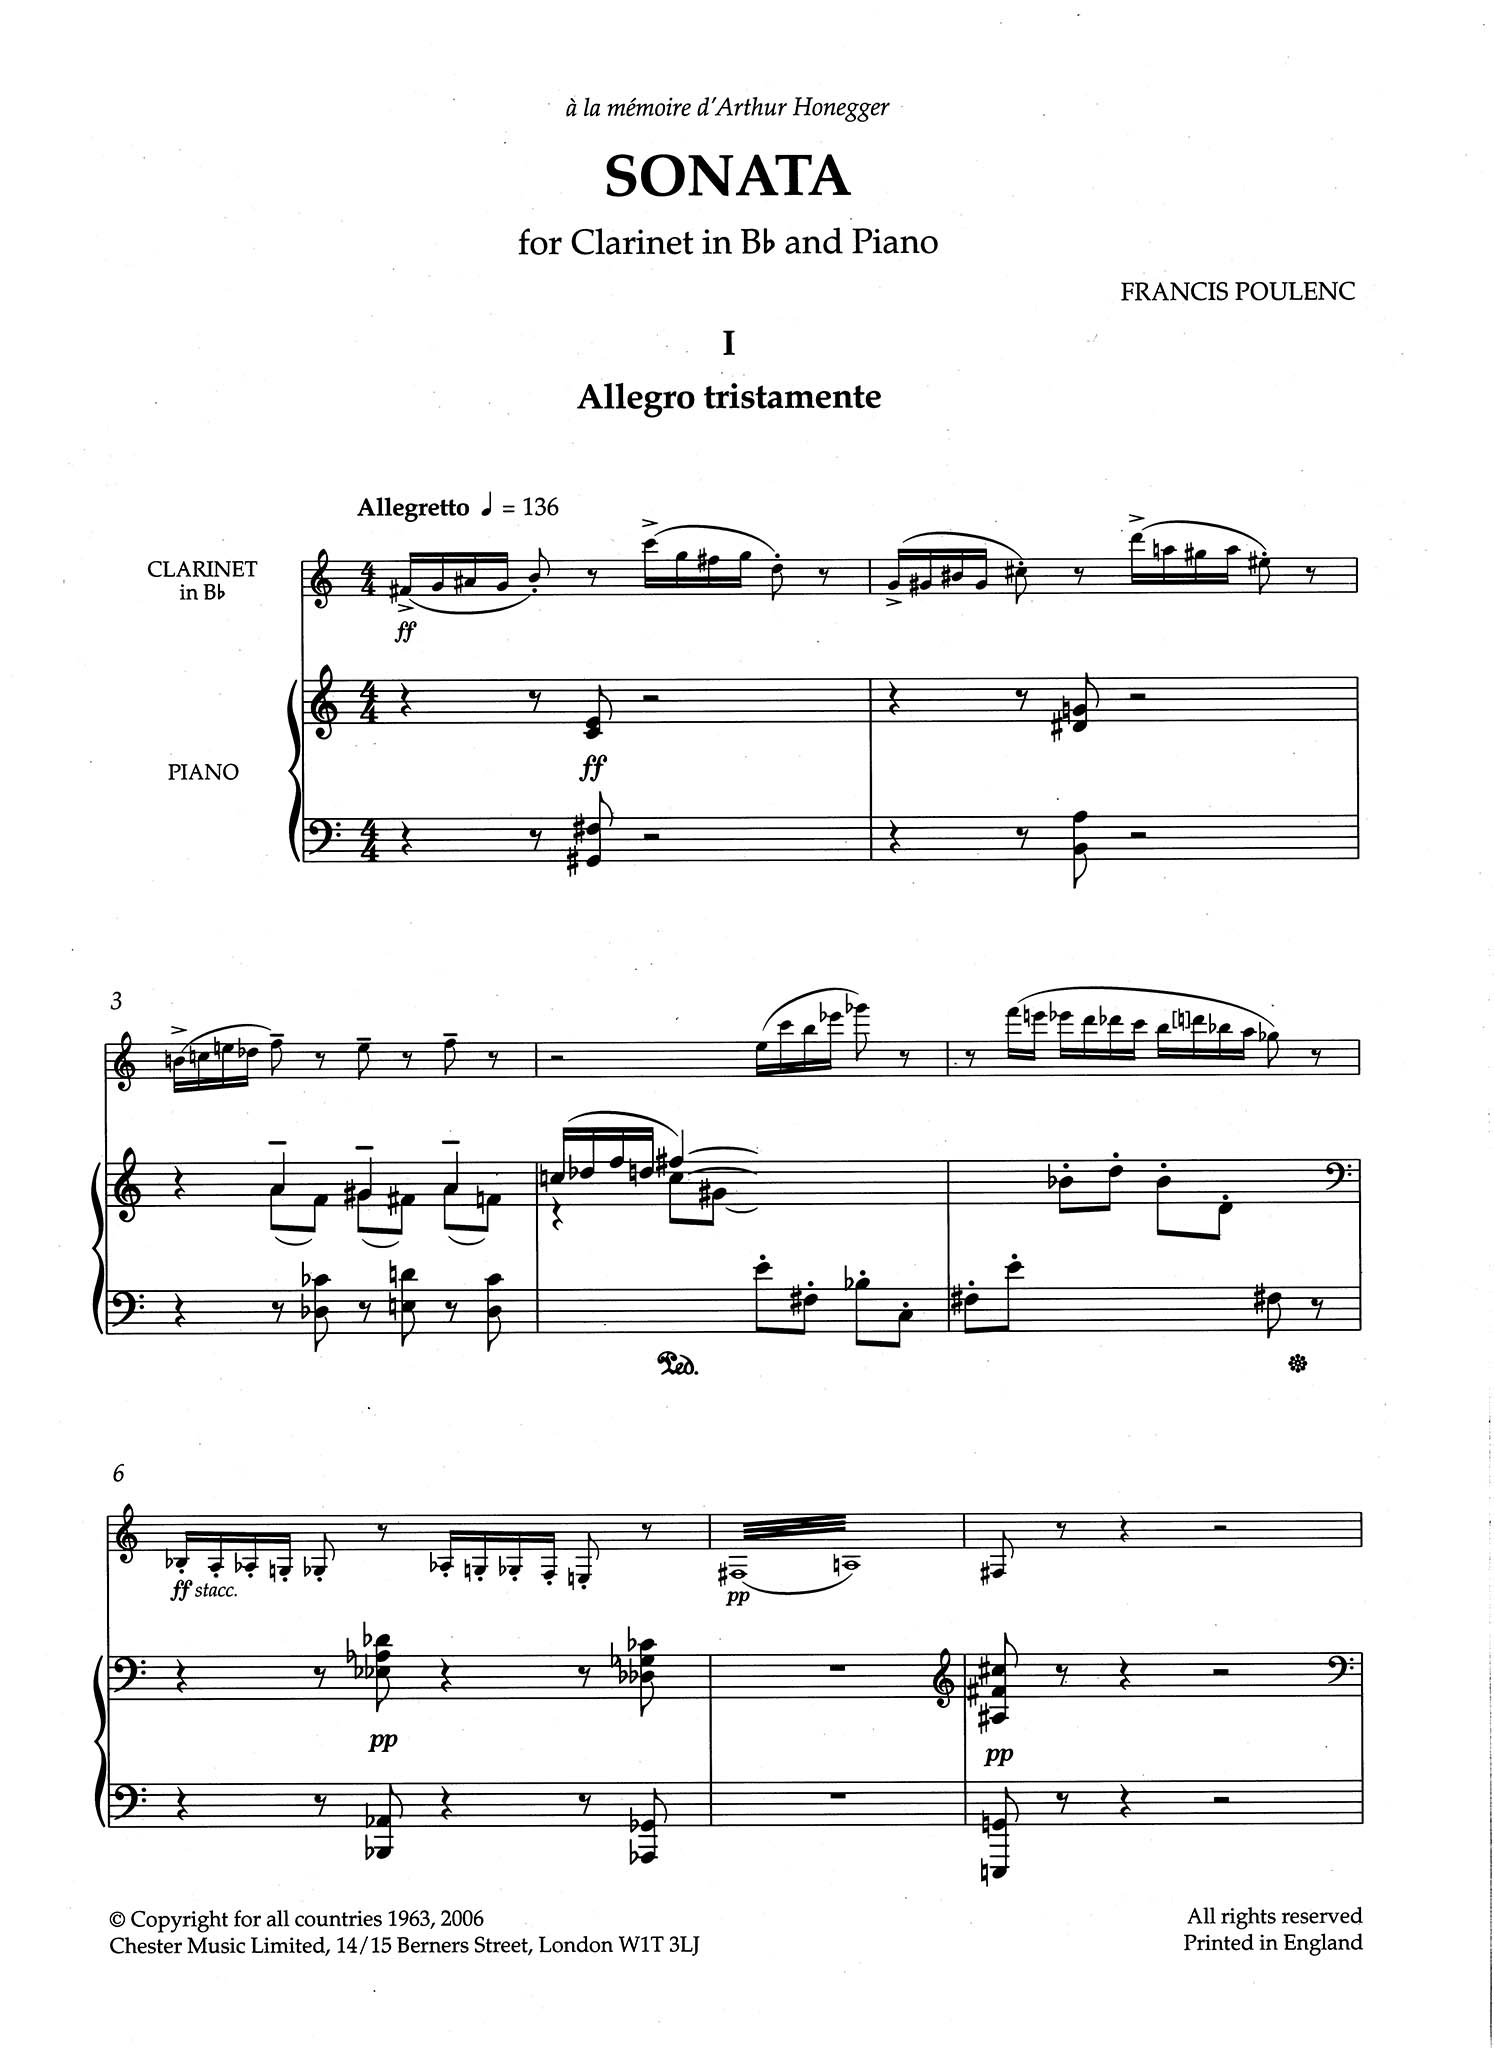 Sonata for Clarinet & Piano - Movement 1